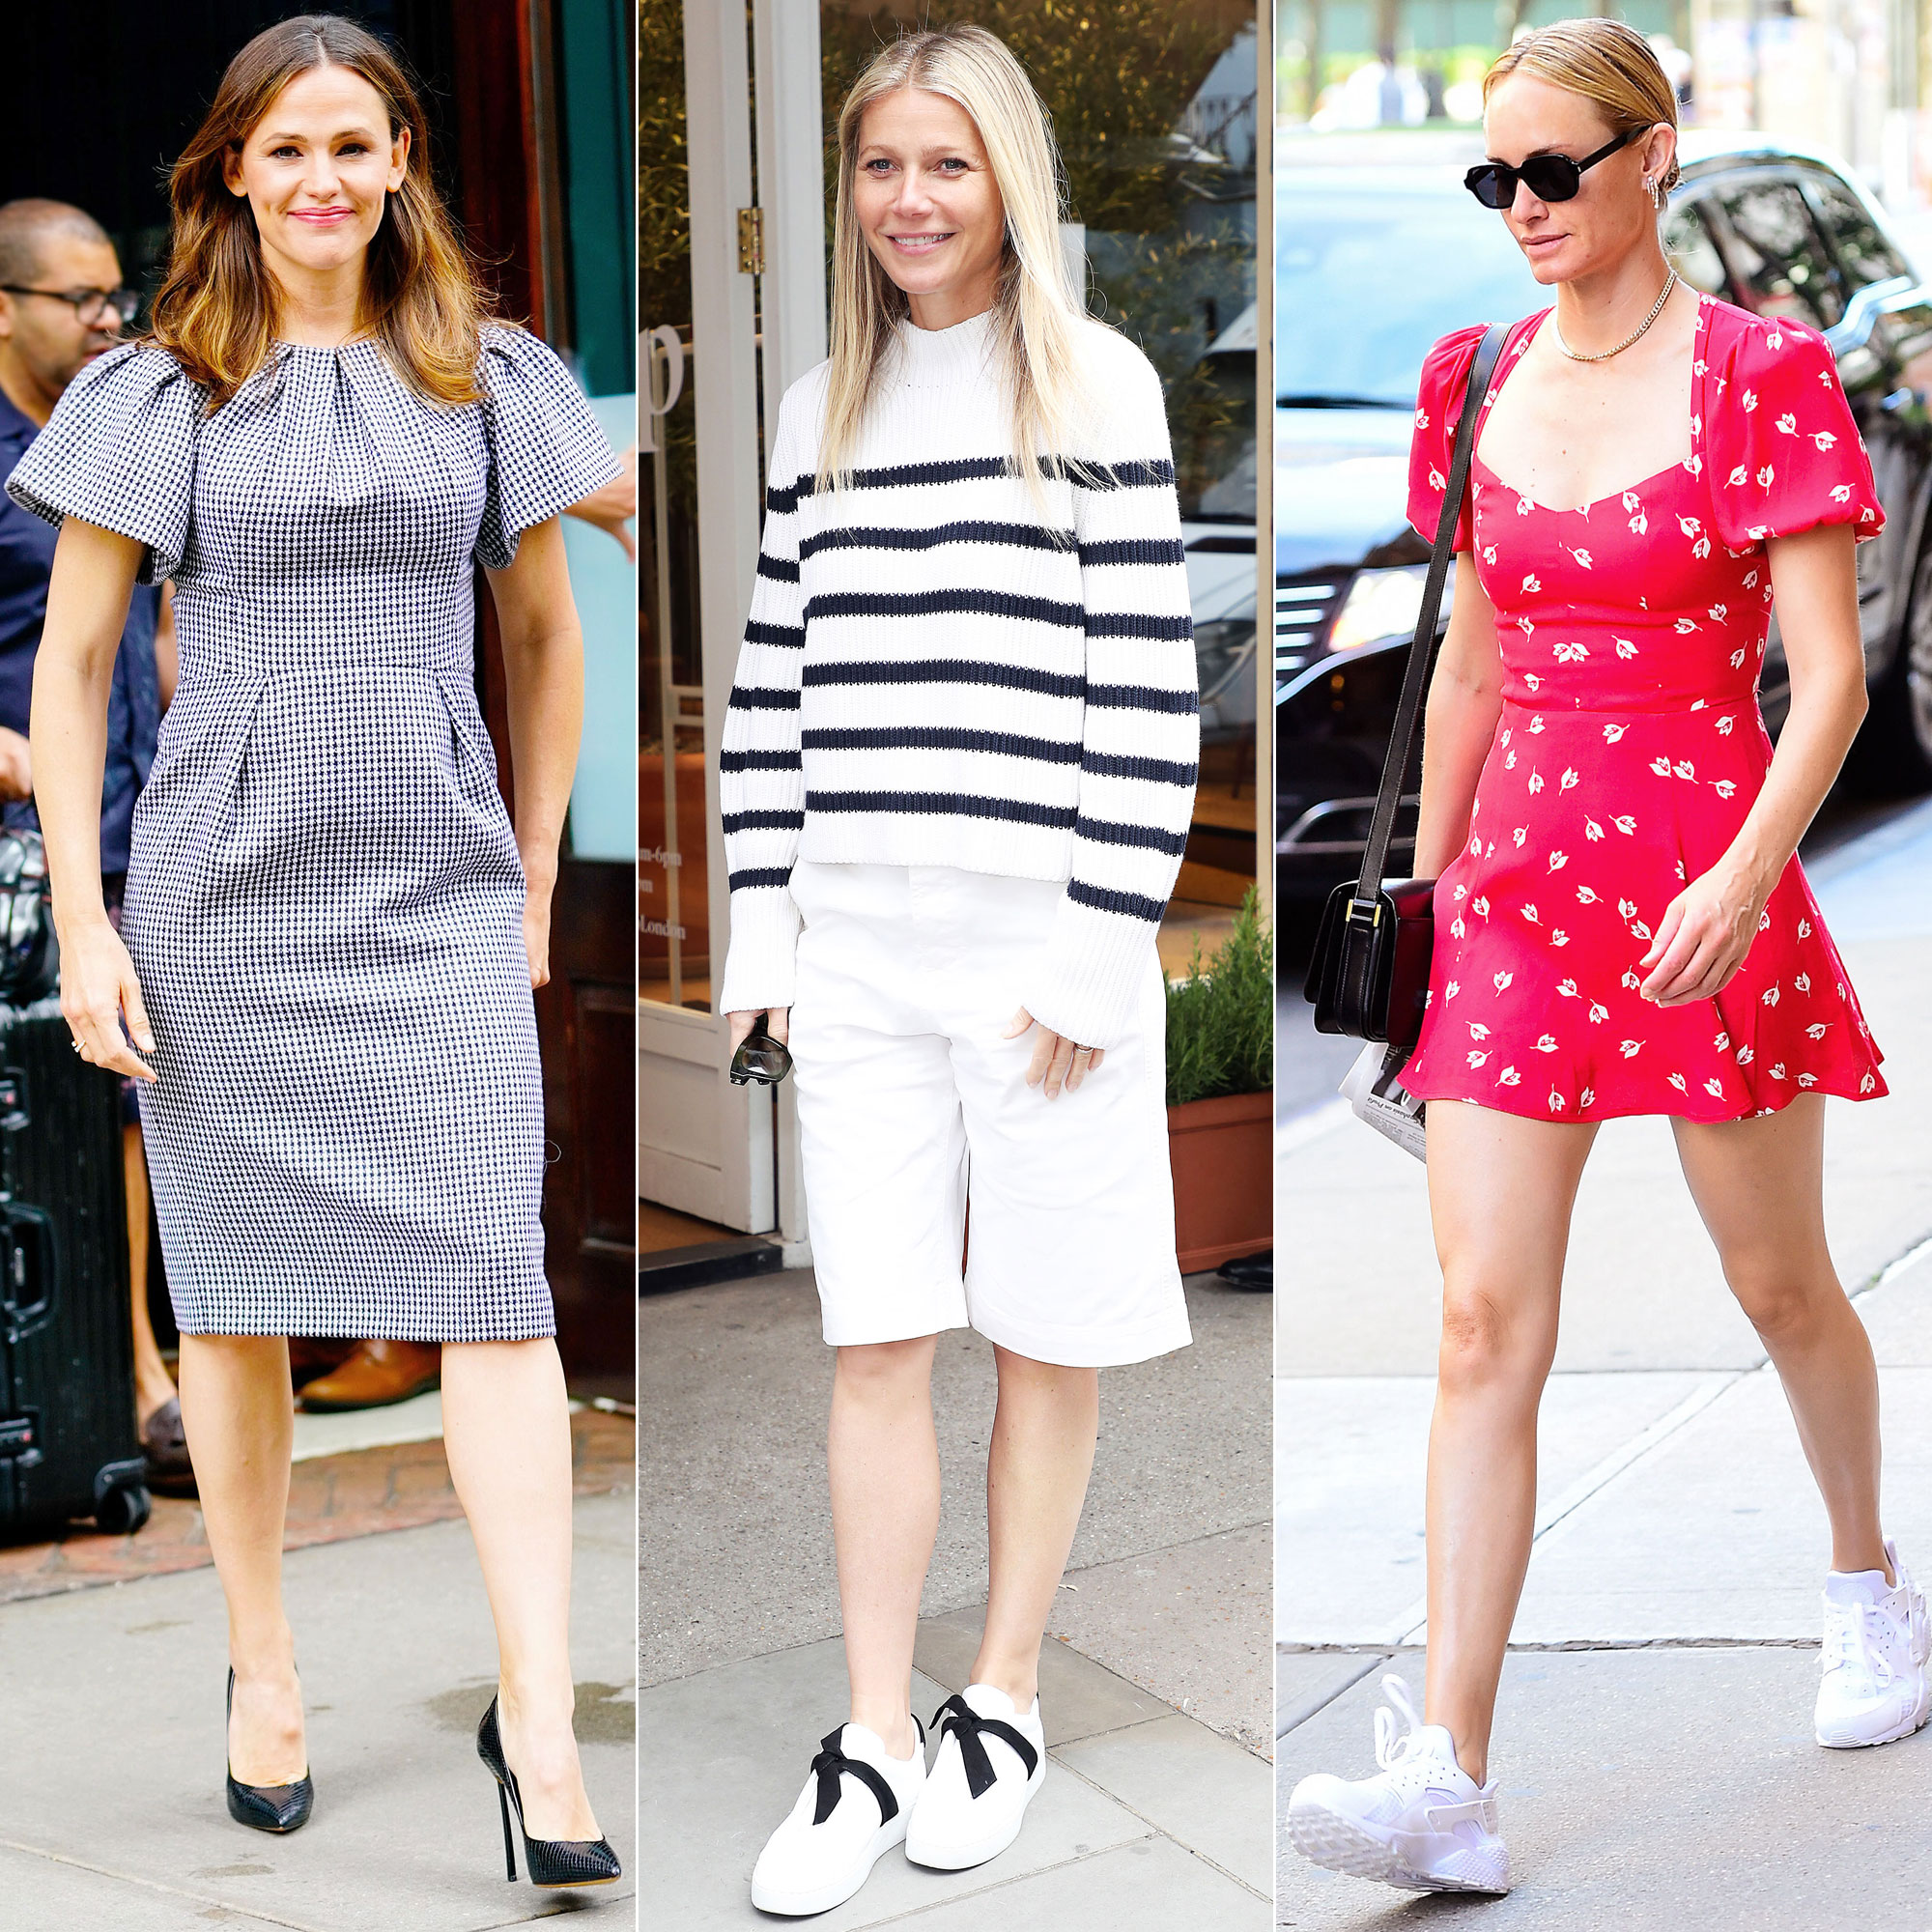 4th of July Style and Fashion Ideas From Celebrities